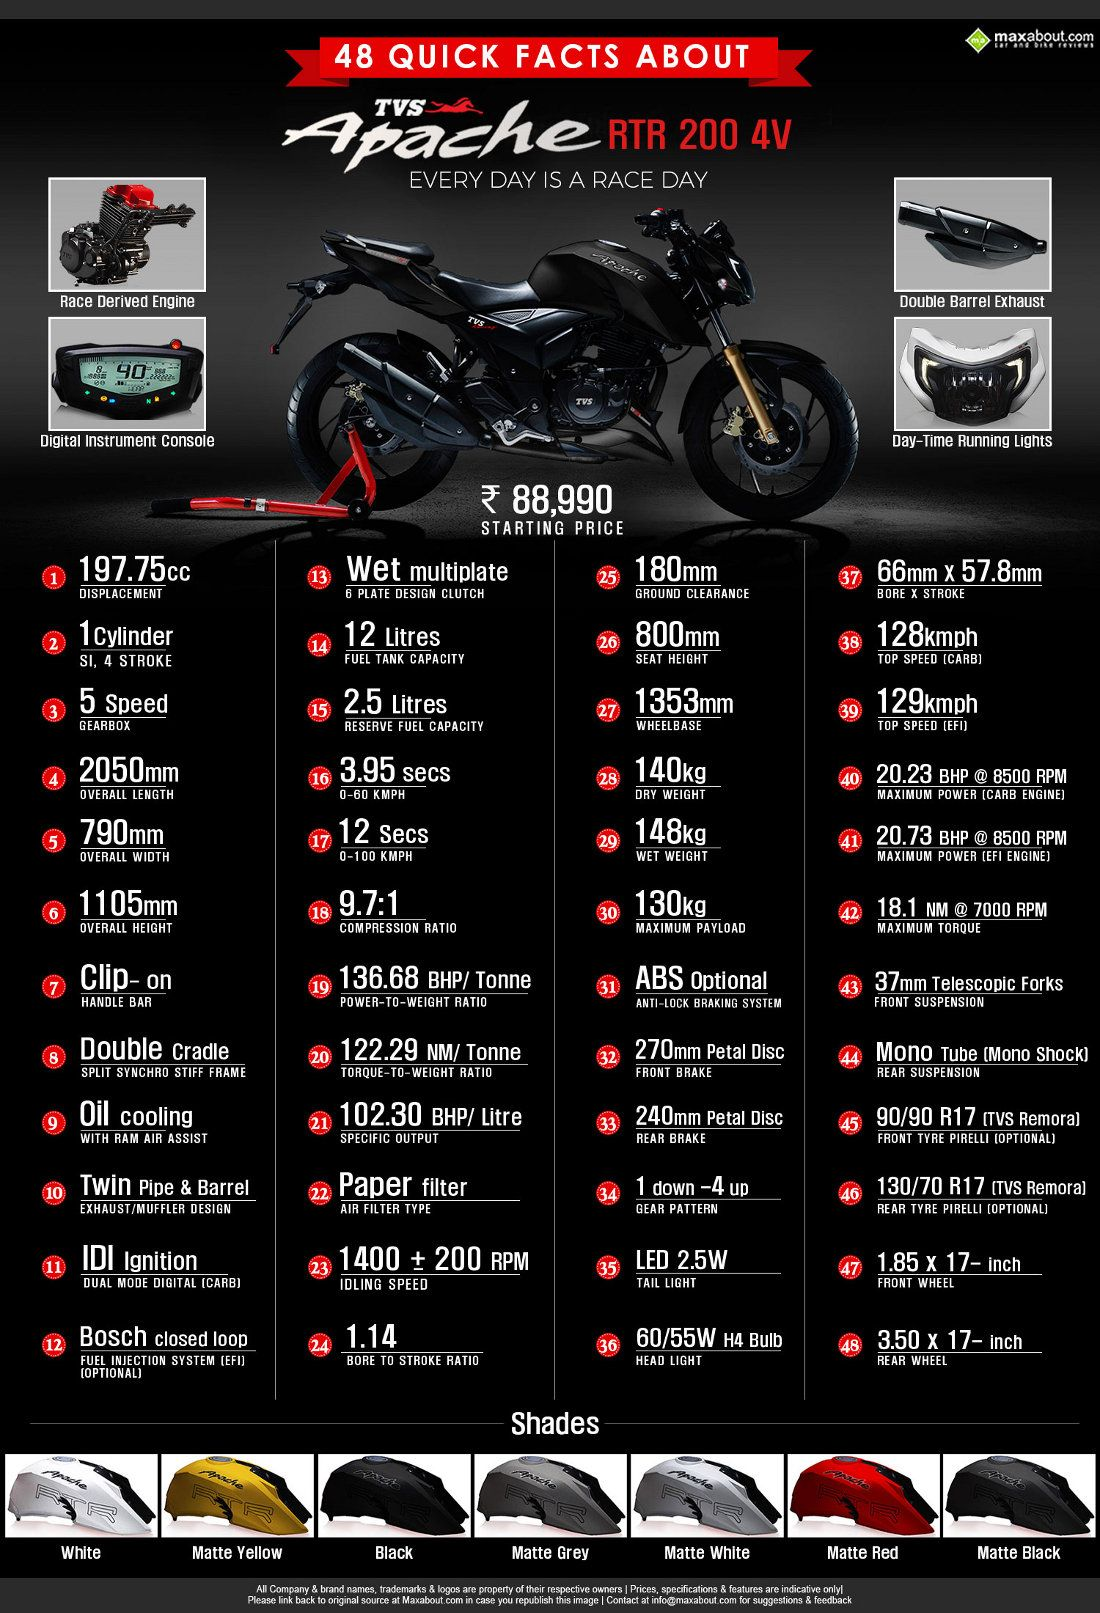 Awesome 48 Quick Facts About Tvs Apache Rtr 200 4V Facts Tvs Gmtry Best Dining Table And Chair Ideas Images Gmtryco